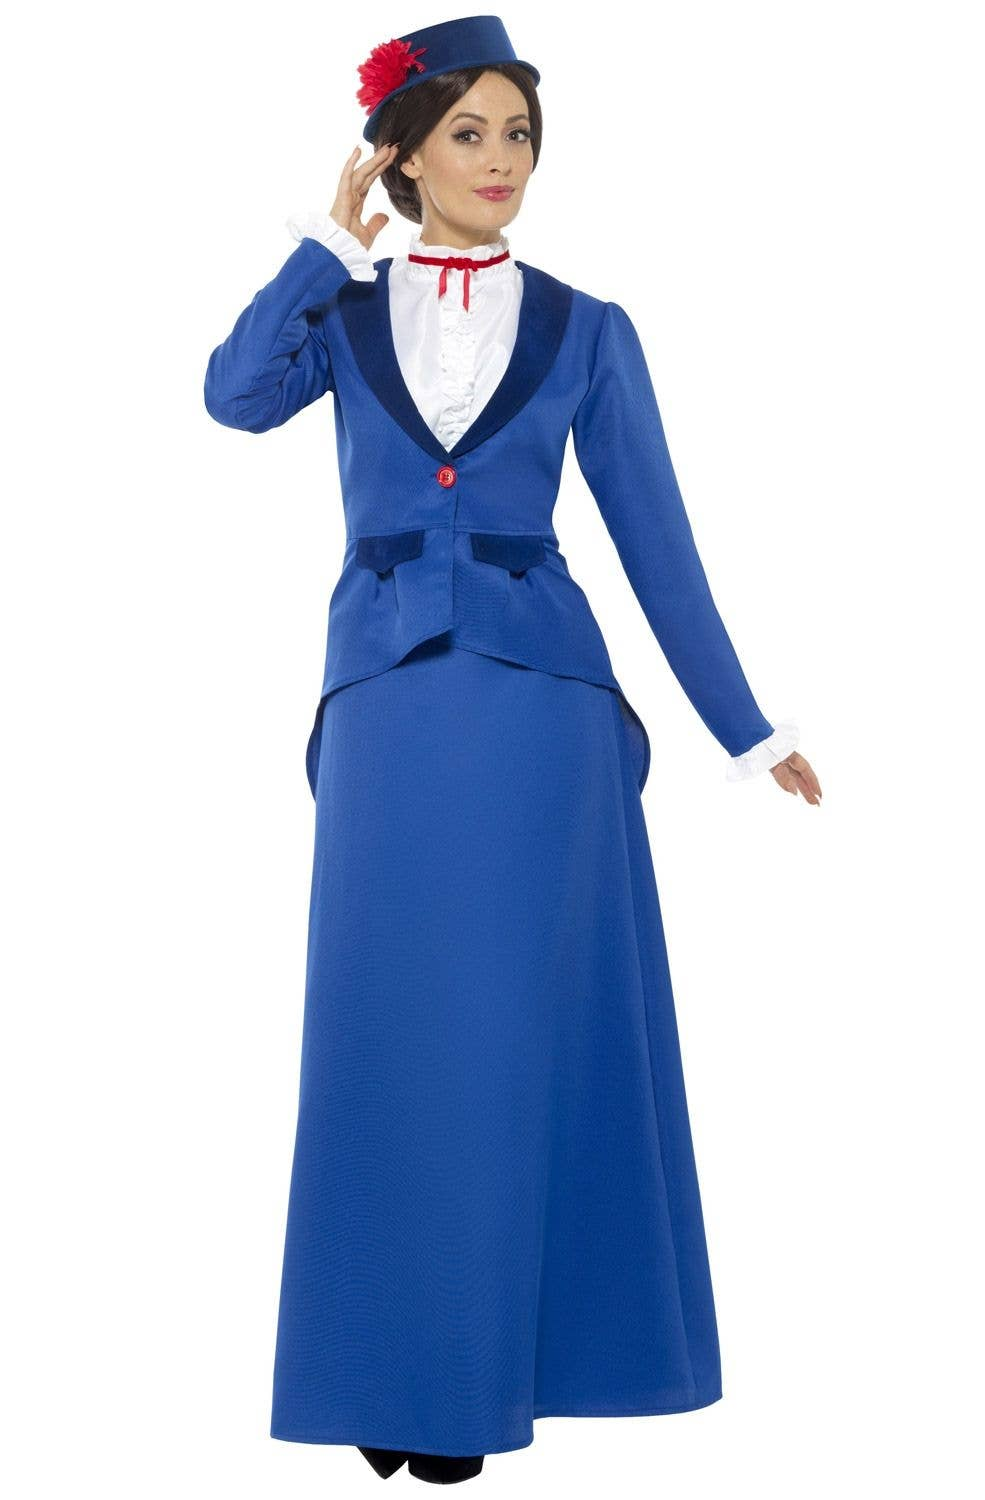 Girls Mary Poppins Costume English Nanny Maid Victorian Book Week Fancy Dress